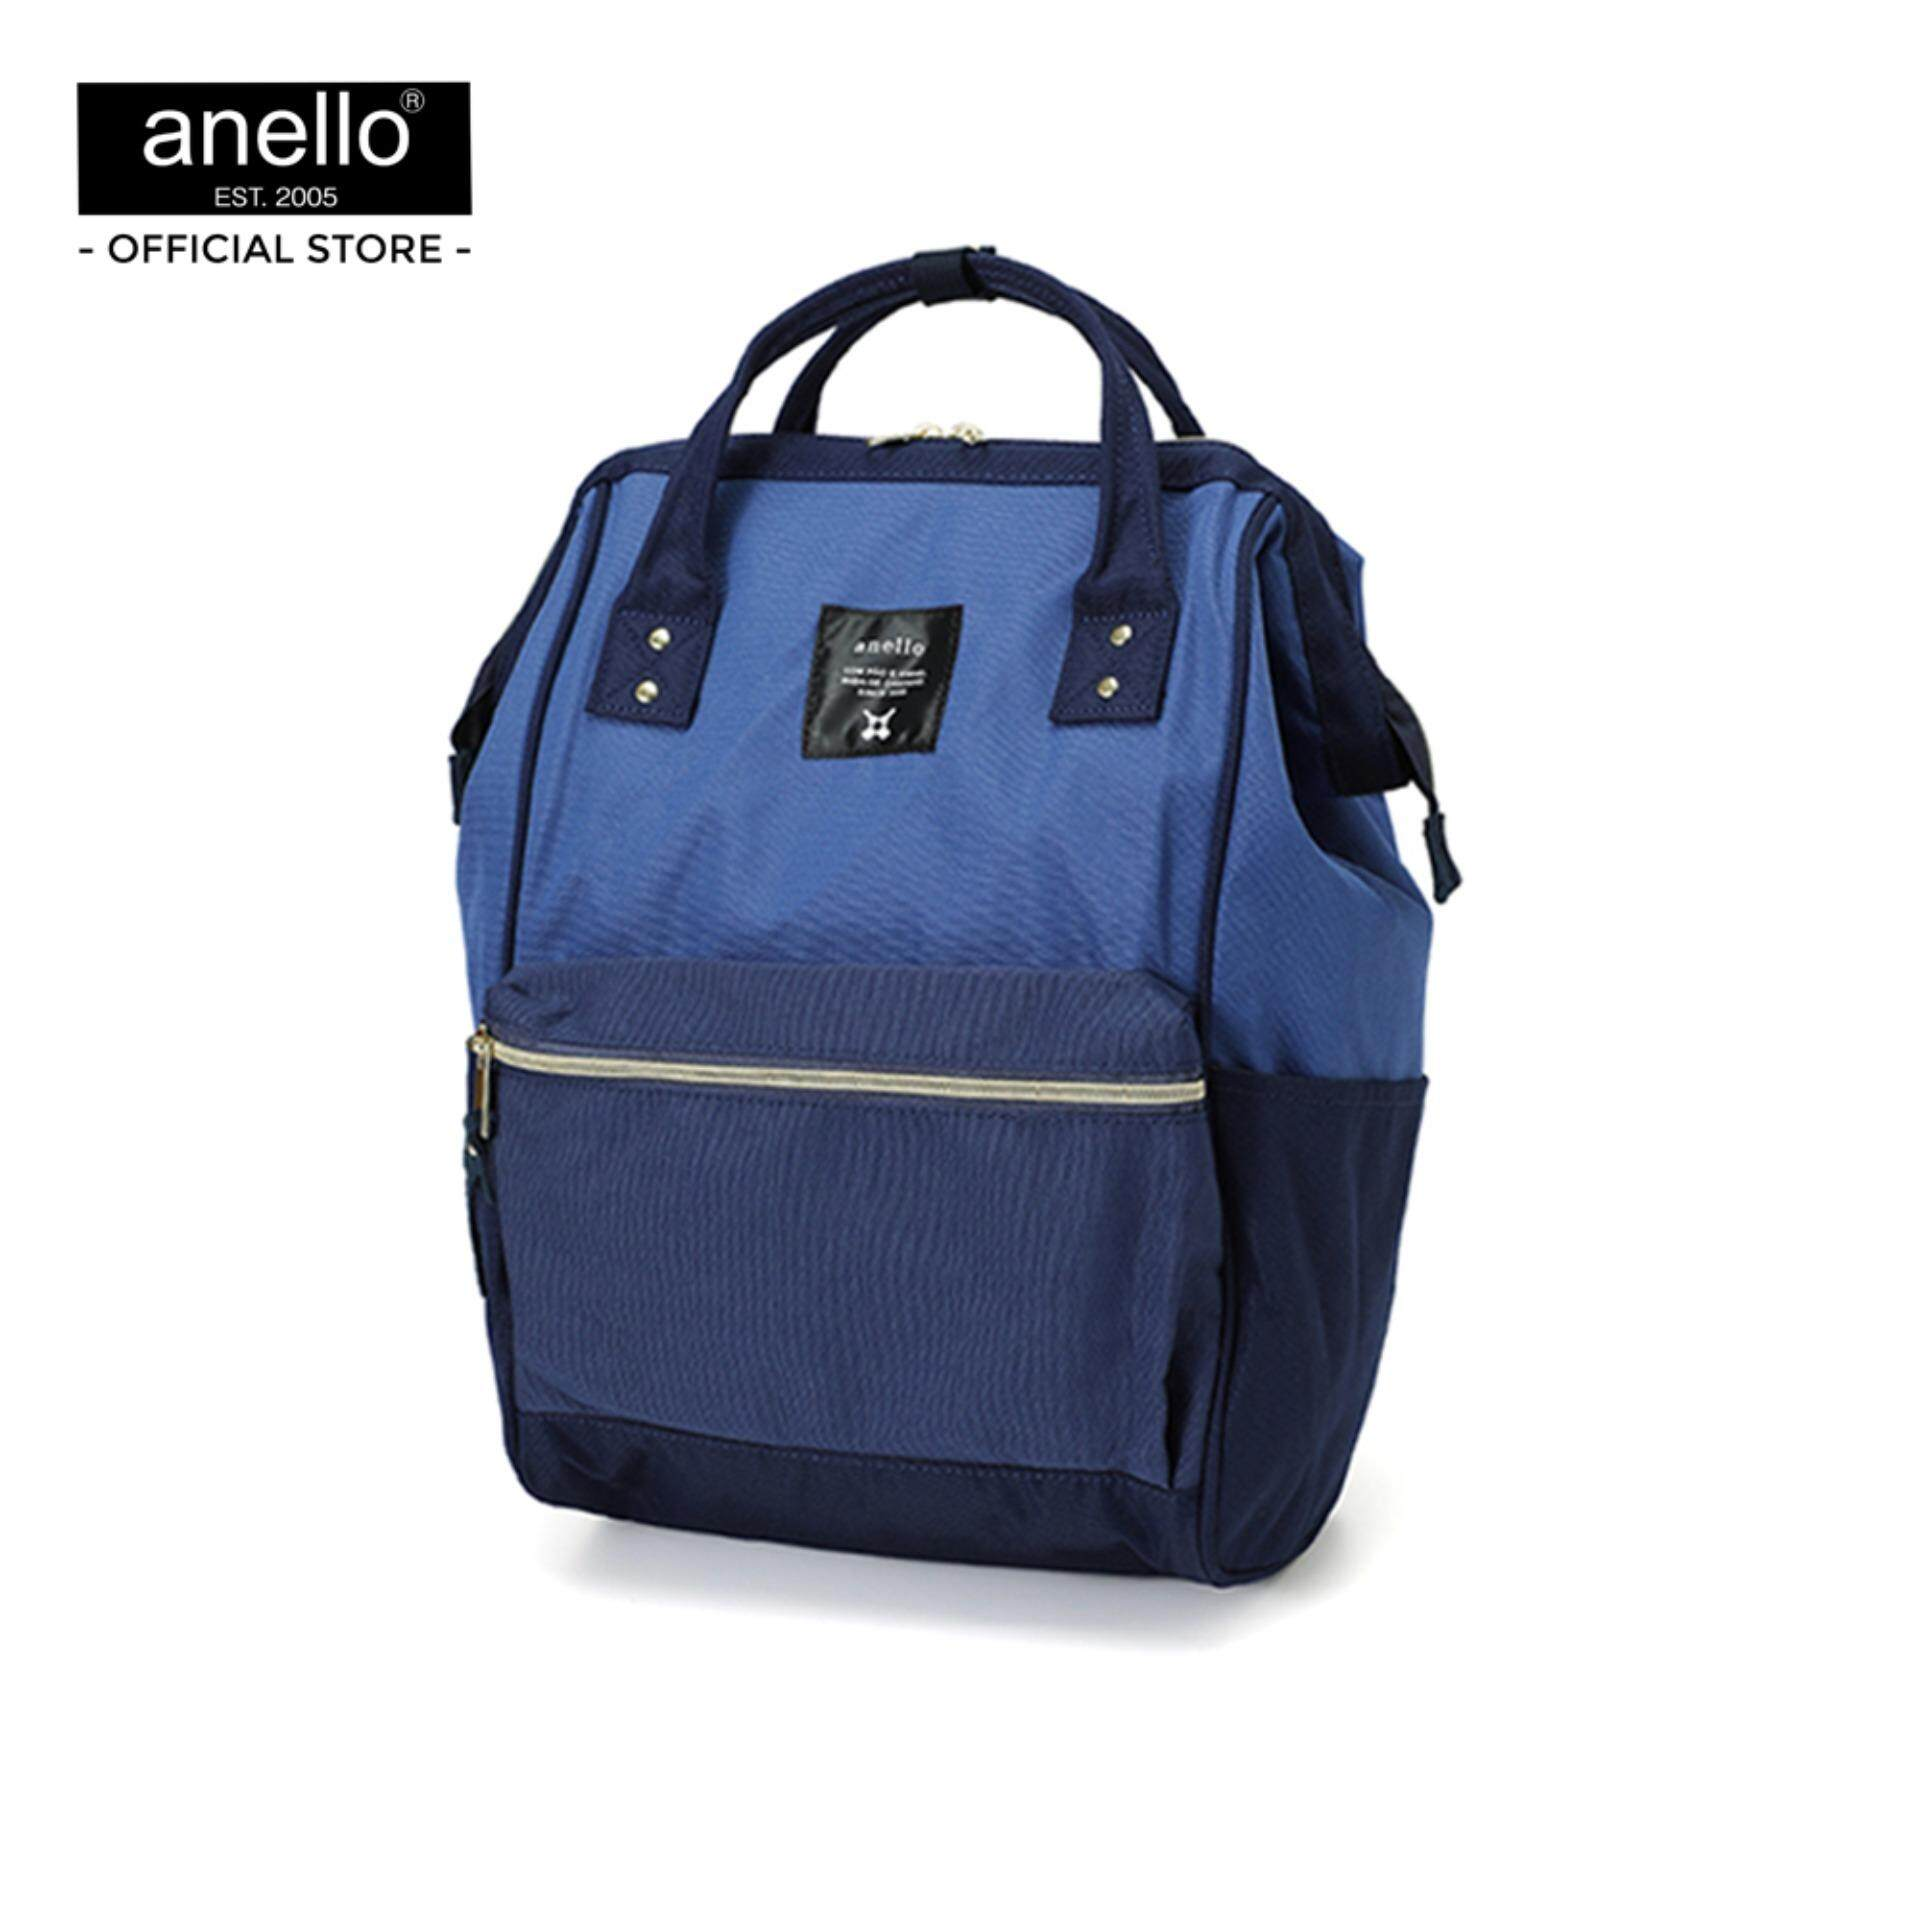 anello REG Backpack_AT-B0193A